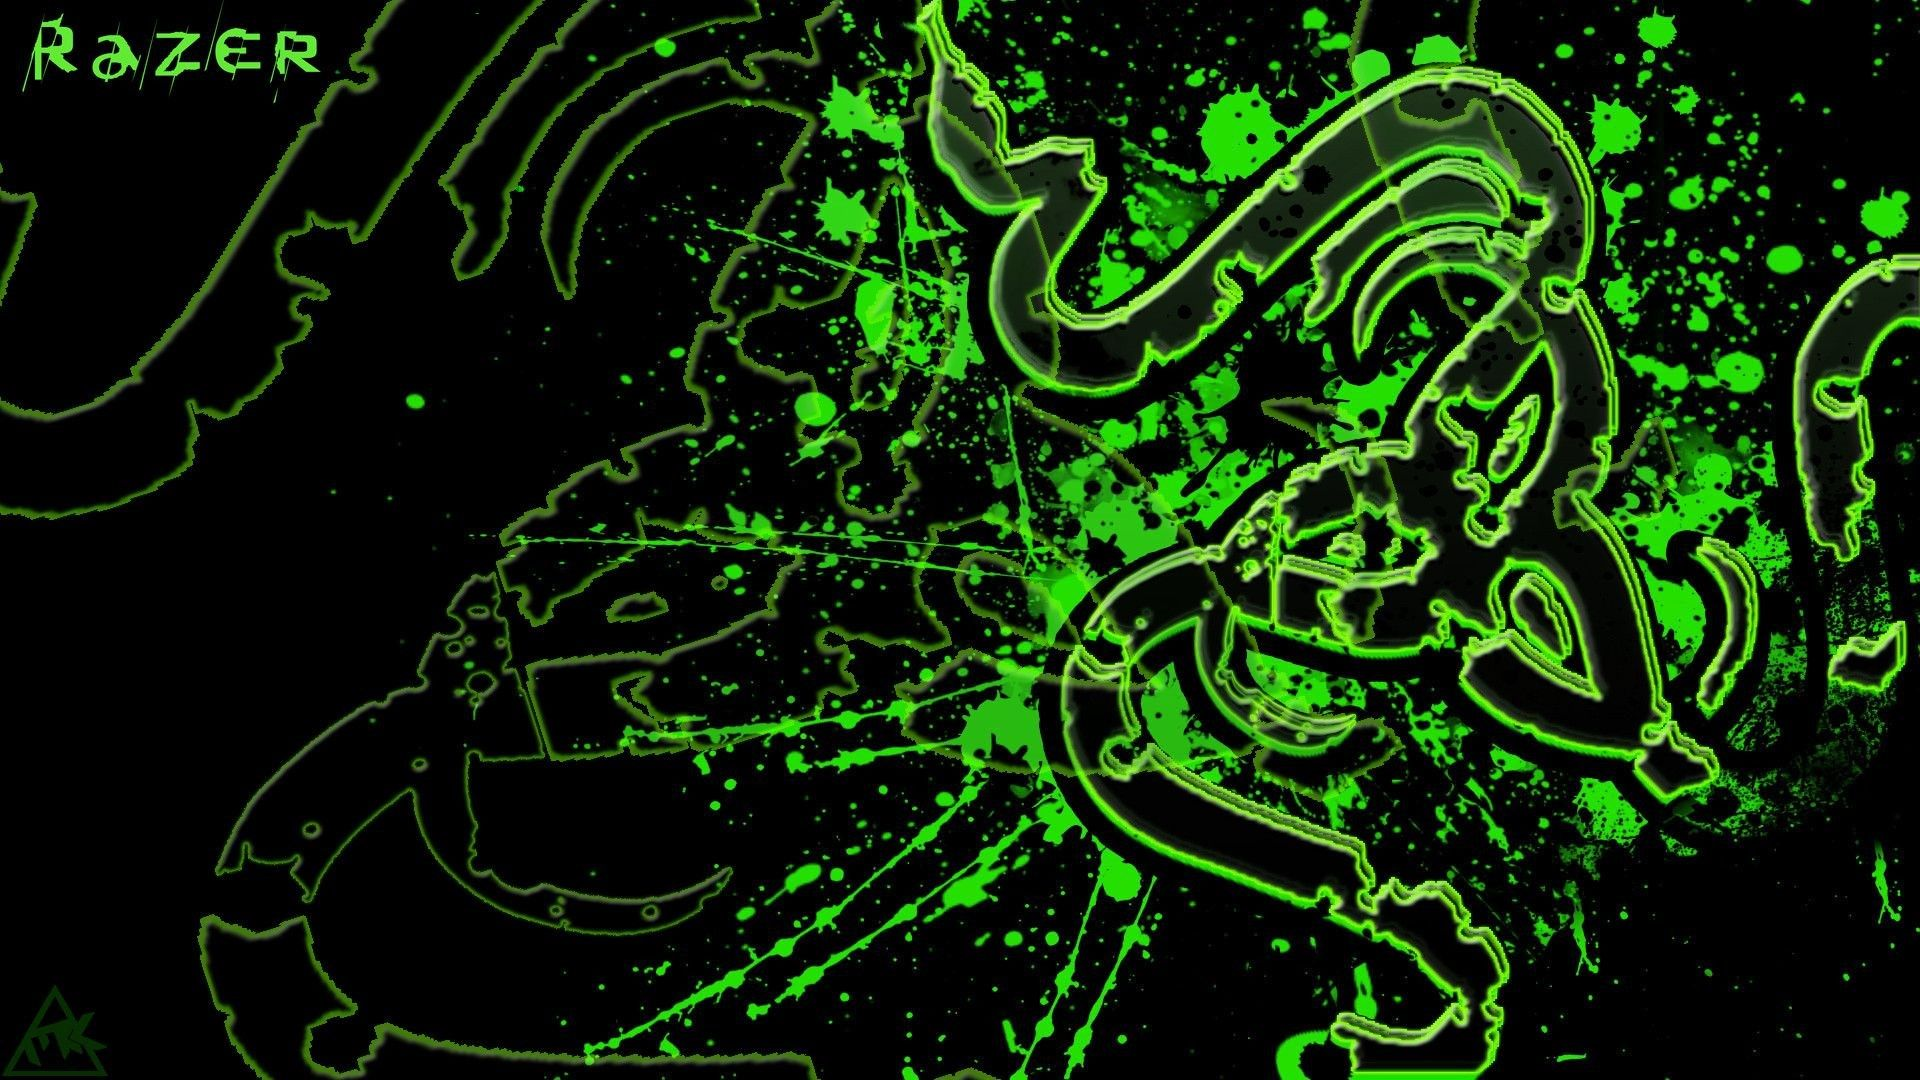 Logo Razer Backgrounds Ololoshenka Wallpaper World Of Warcraft